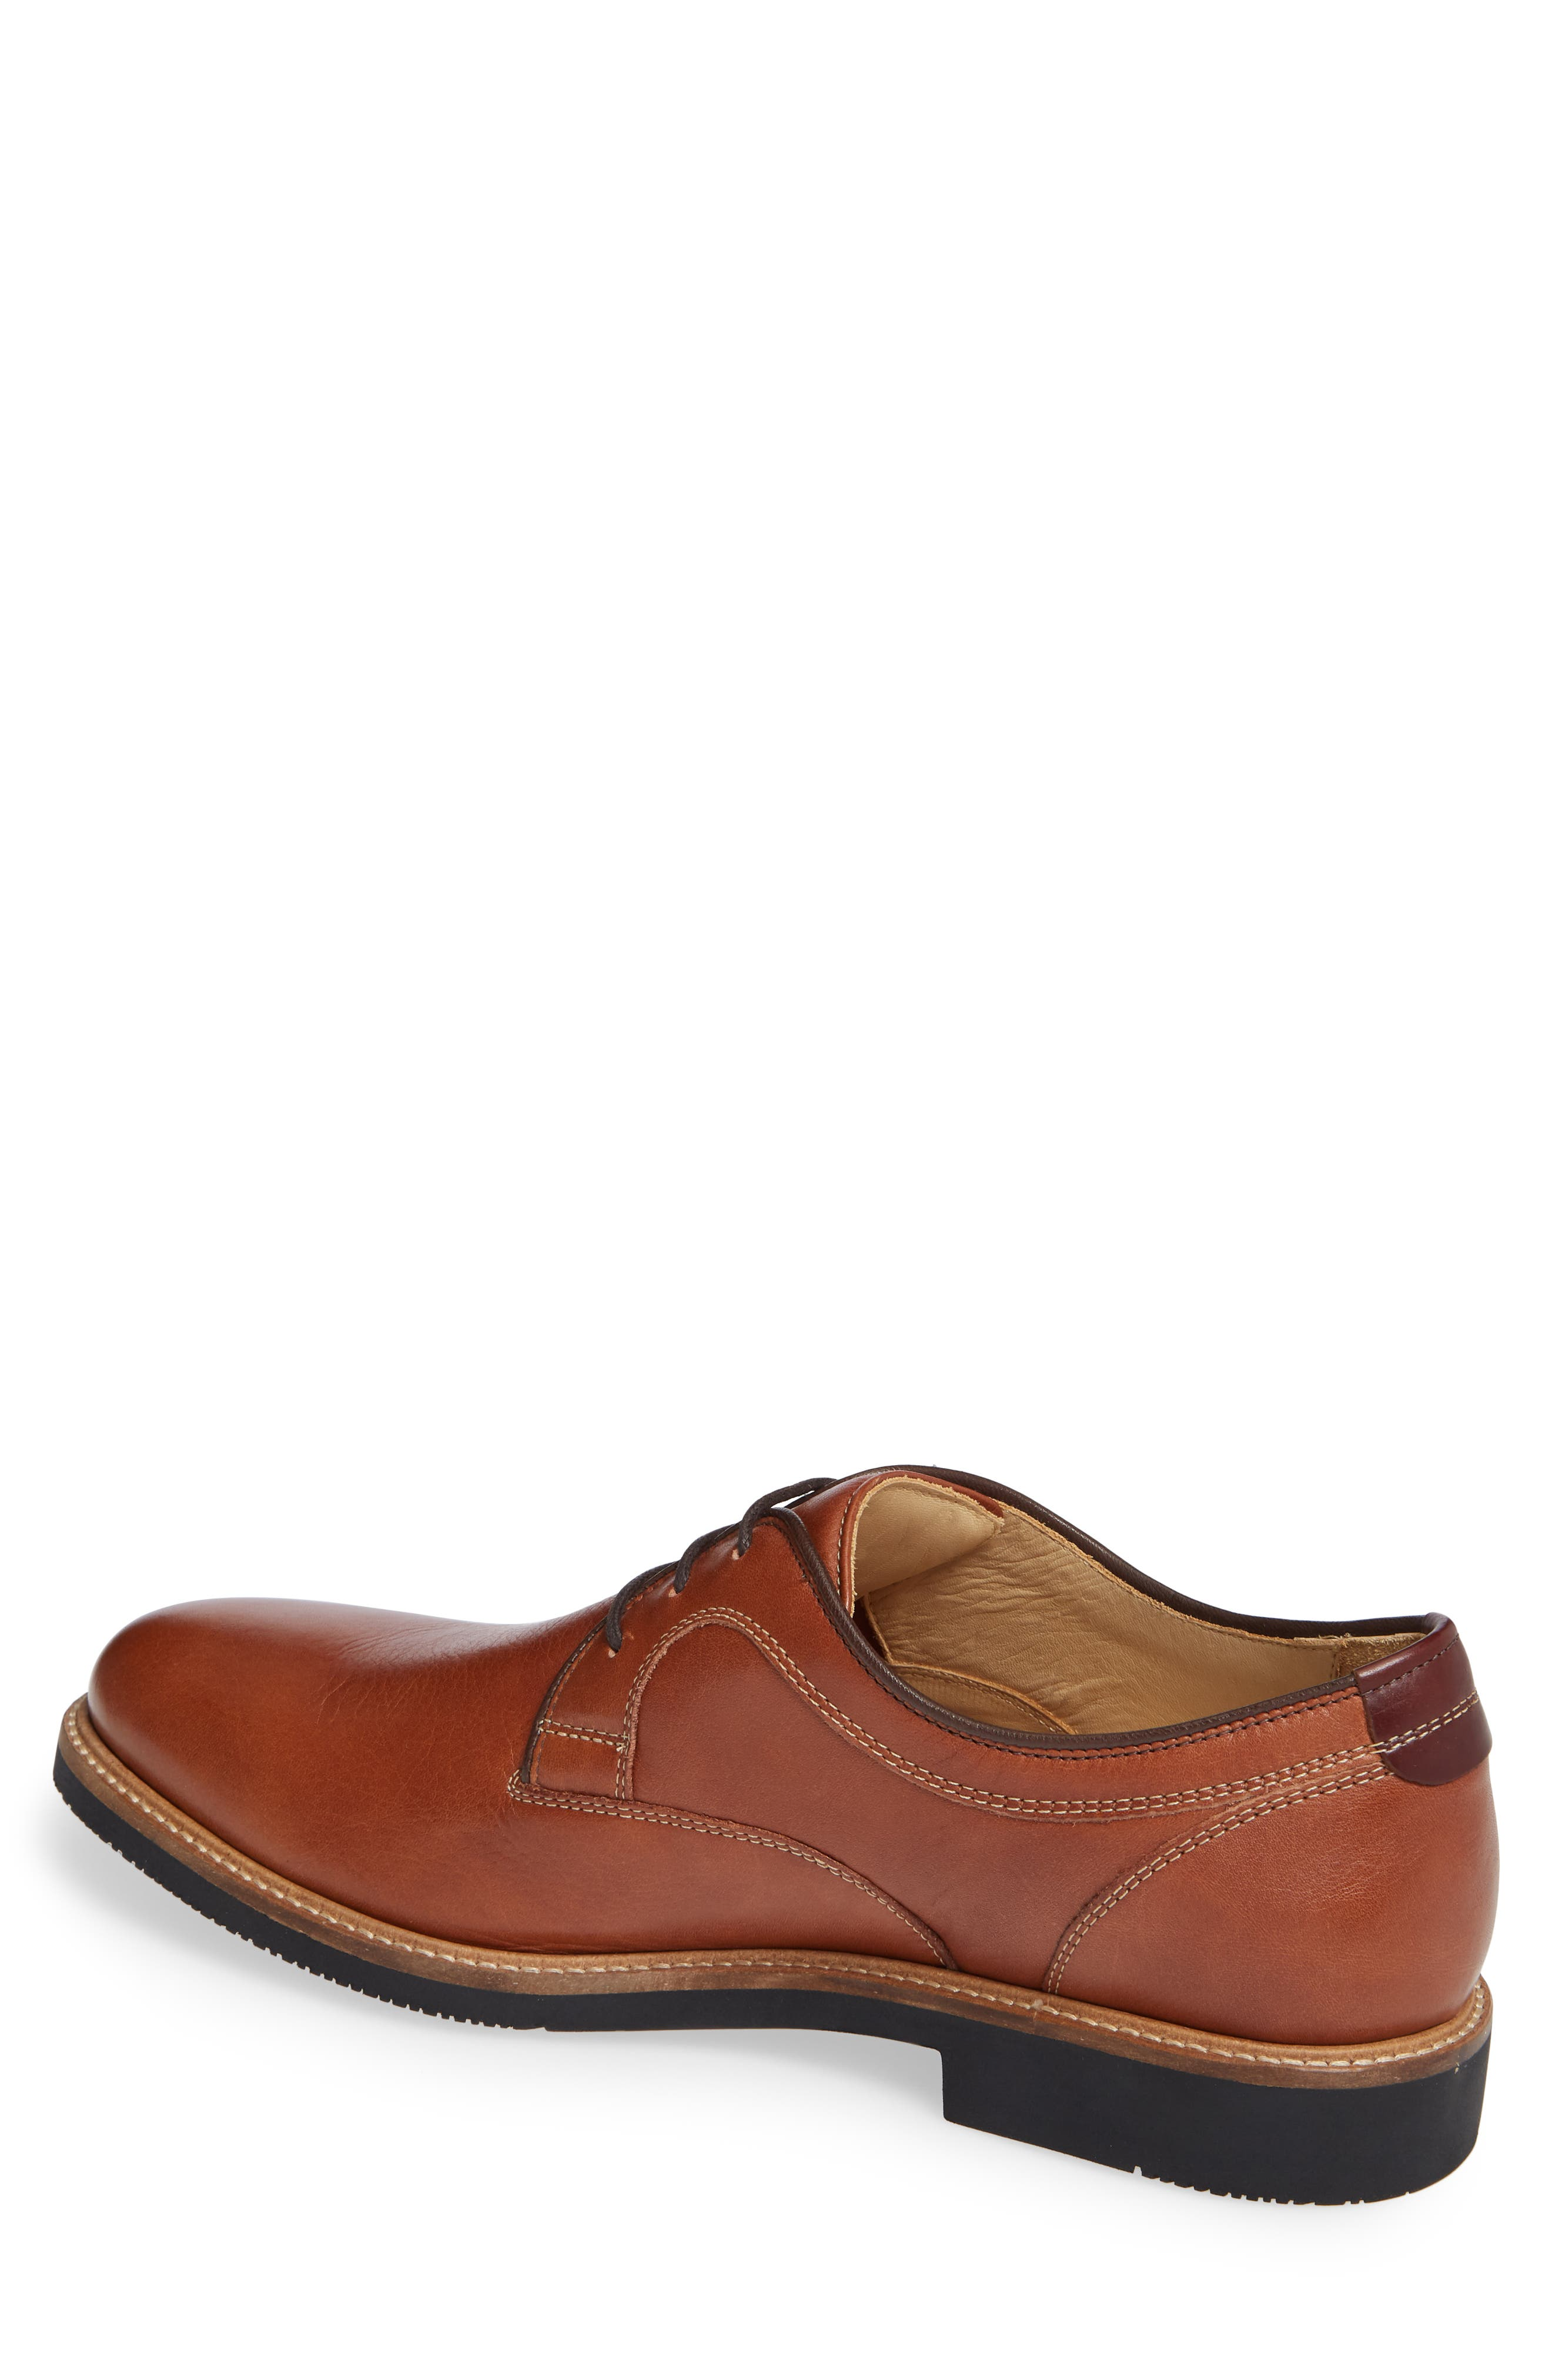 Barlow Plain Toe Derby,                             Alternate thumbnail 2, color,                             DARK TAN LEATHER